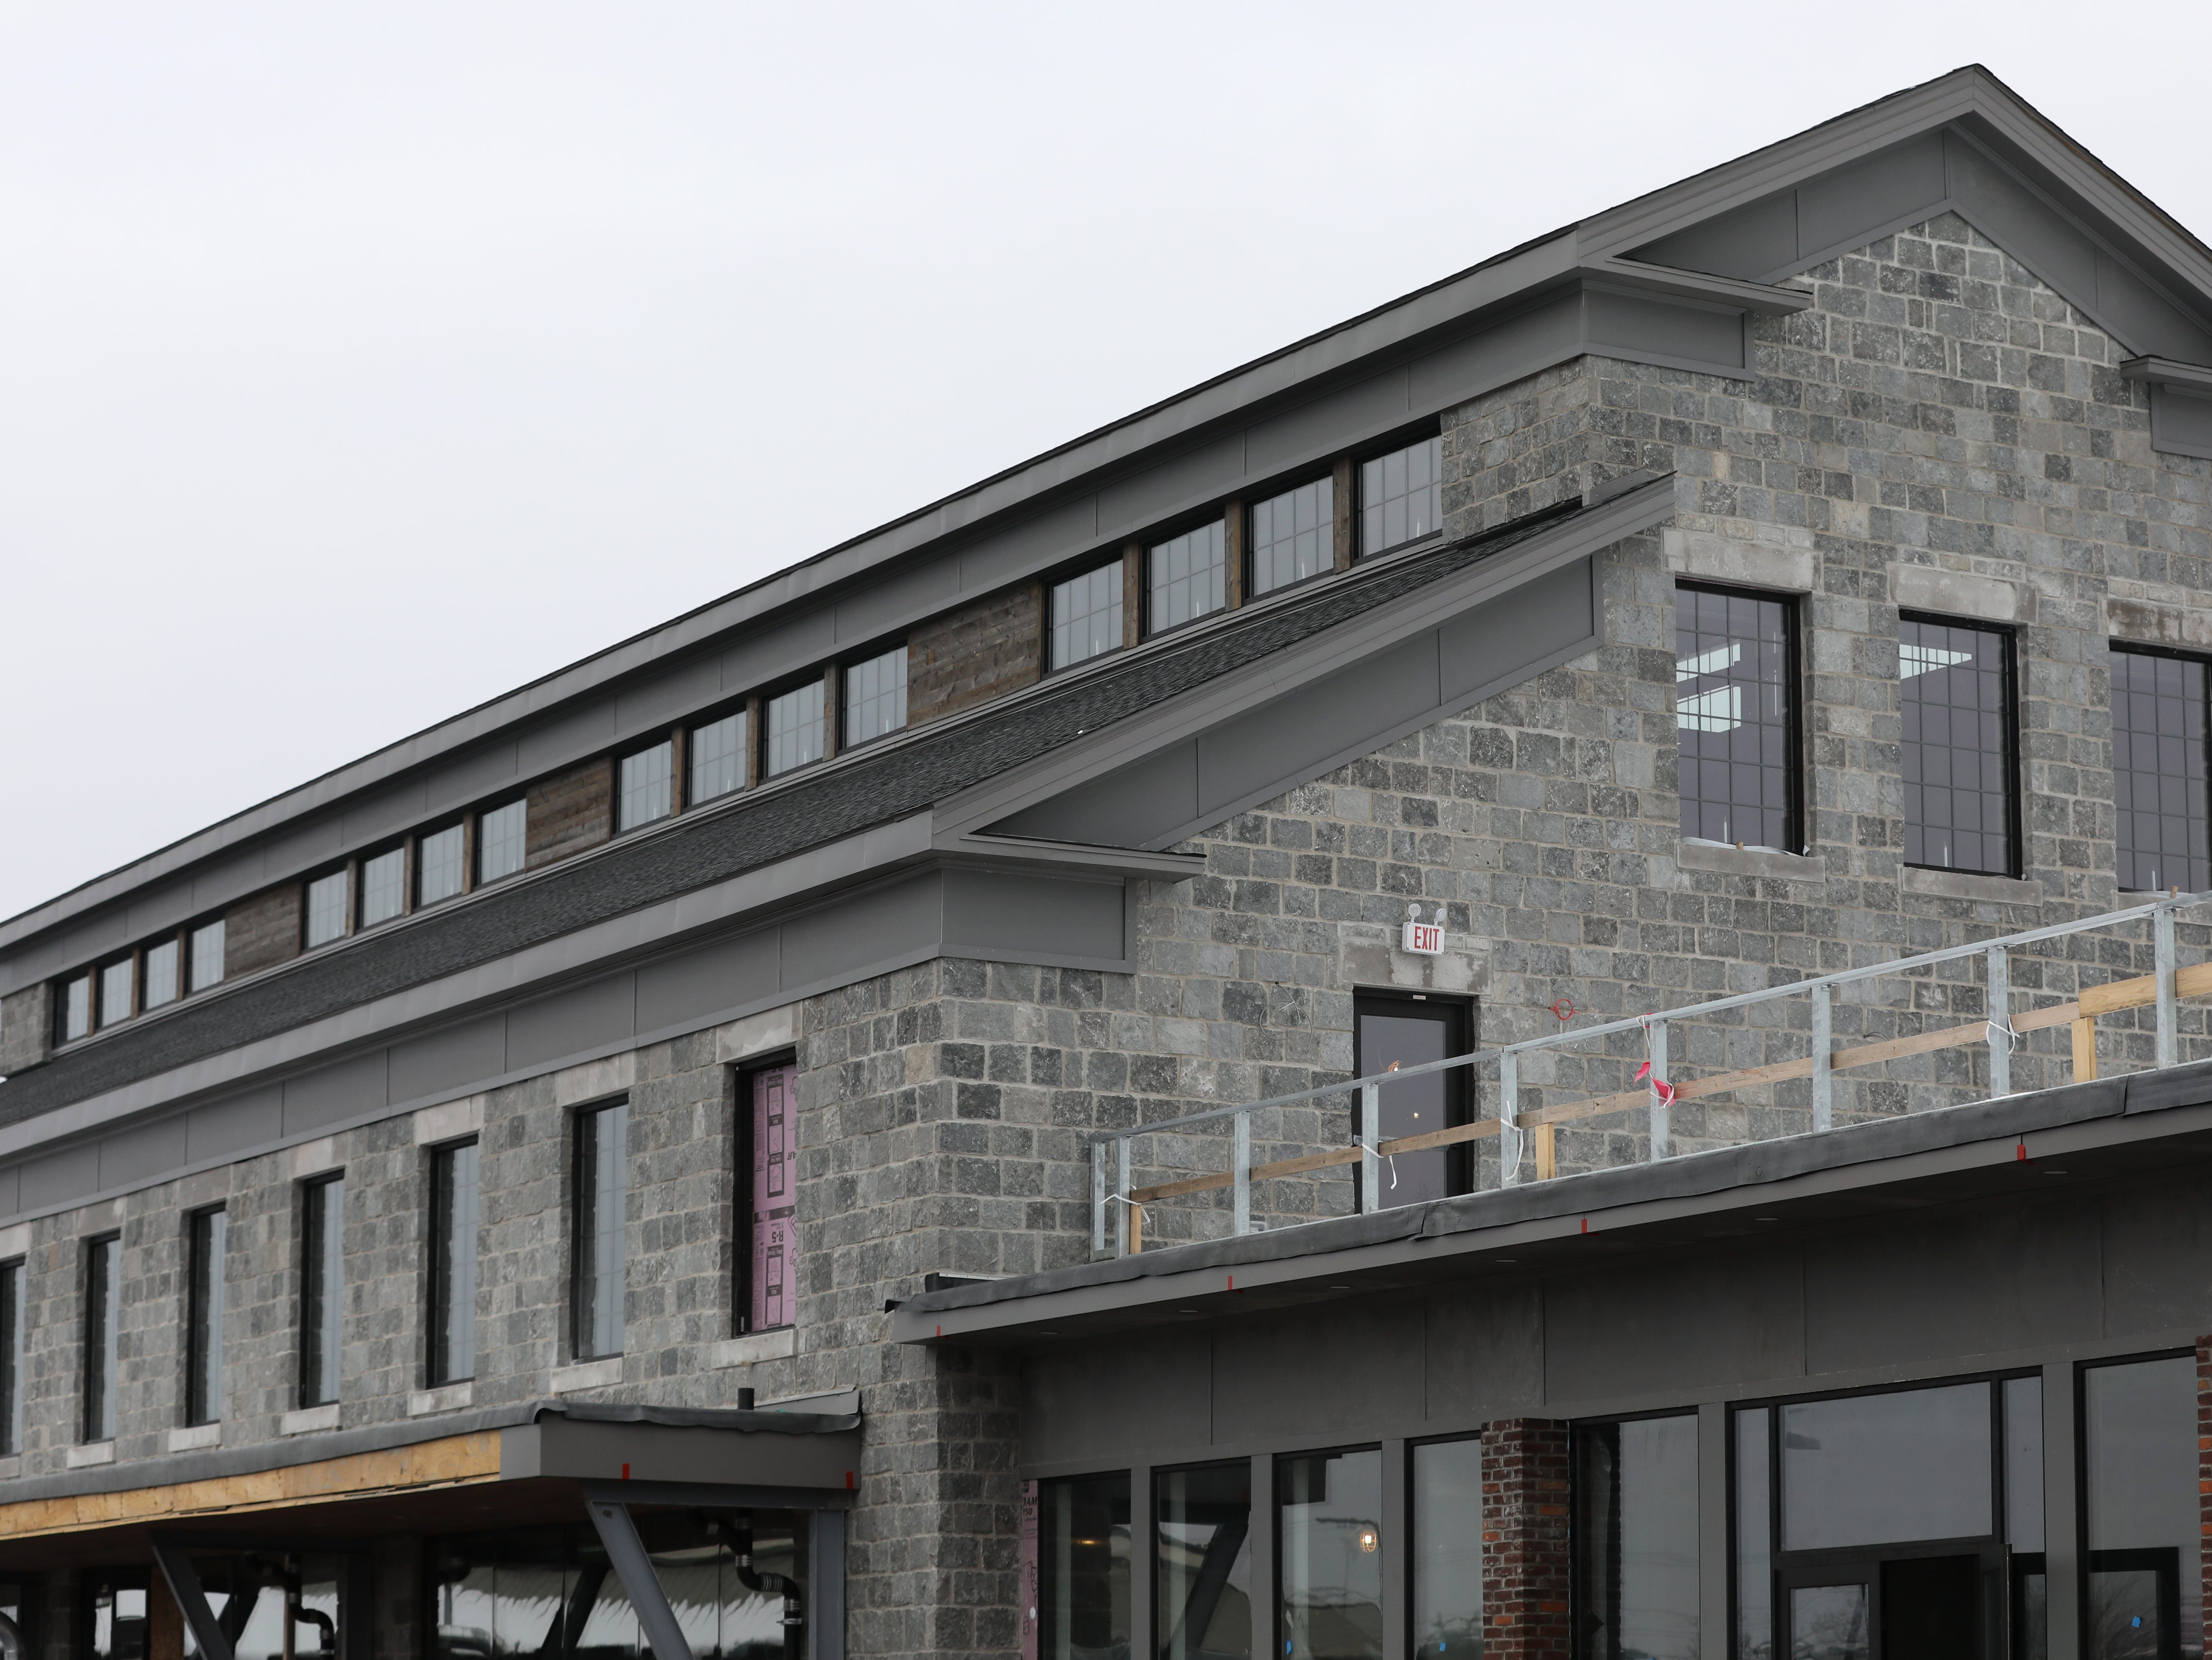 A roof patio will be accessible from the second floor at New York Beer Project in Victor.